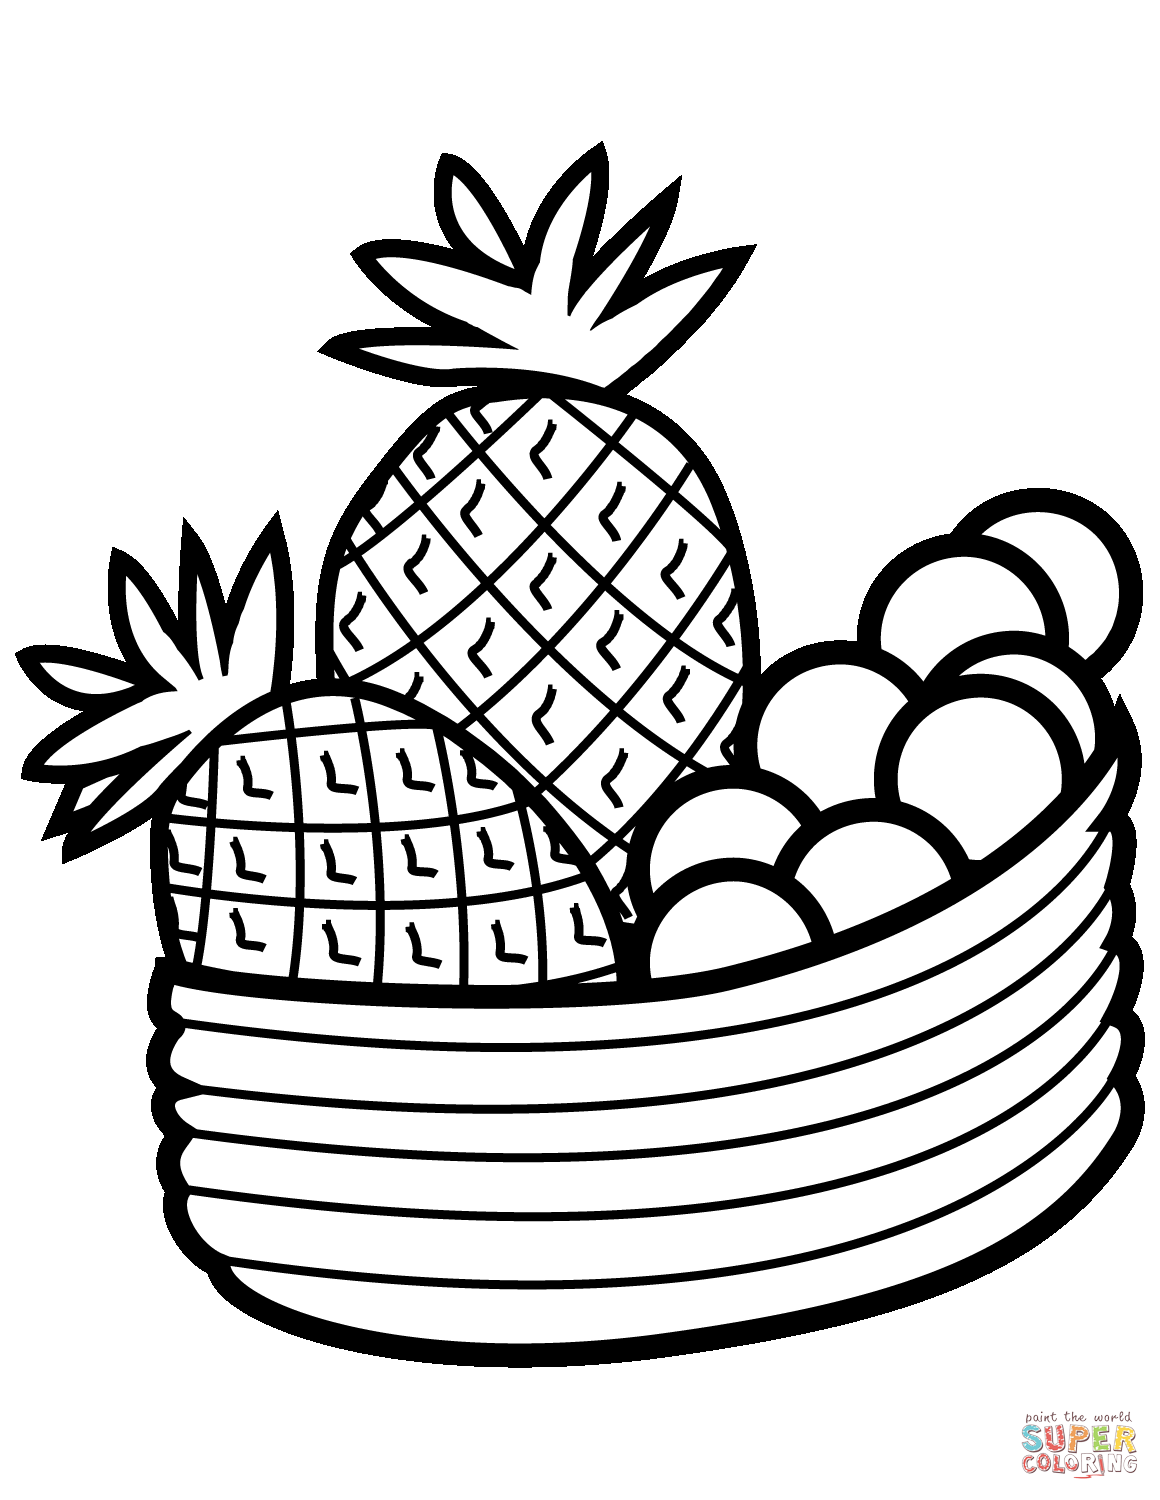 Fruit Bowl Drawing at GetDrawings.com | Free for personal use Fruit ...